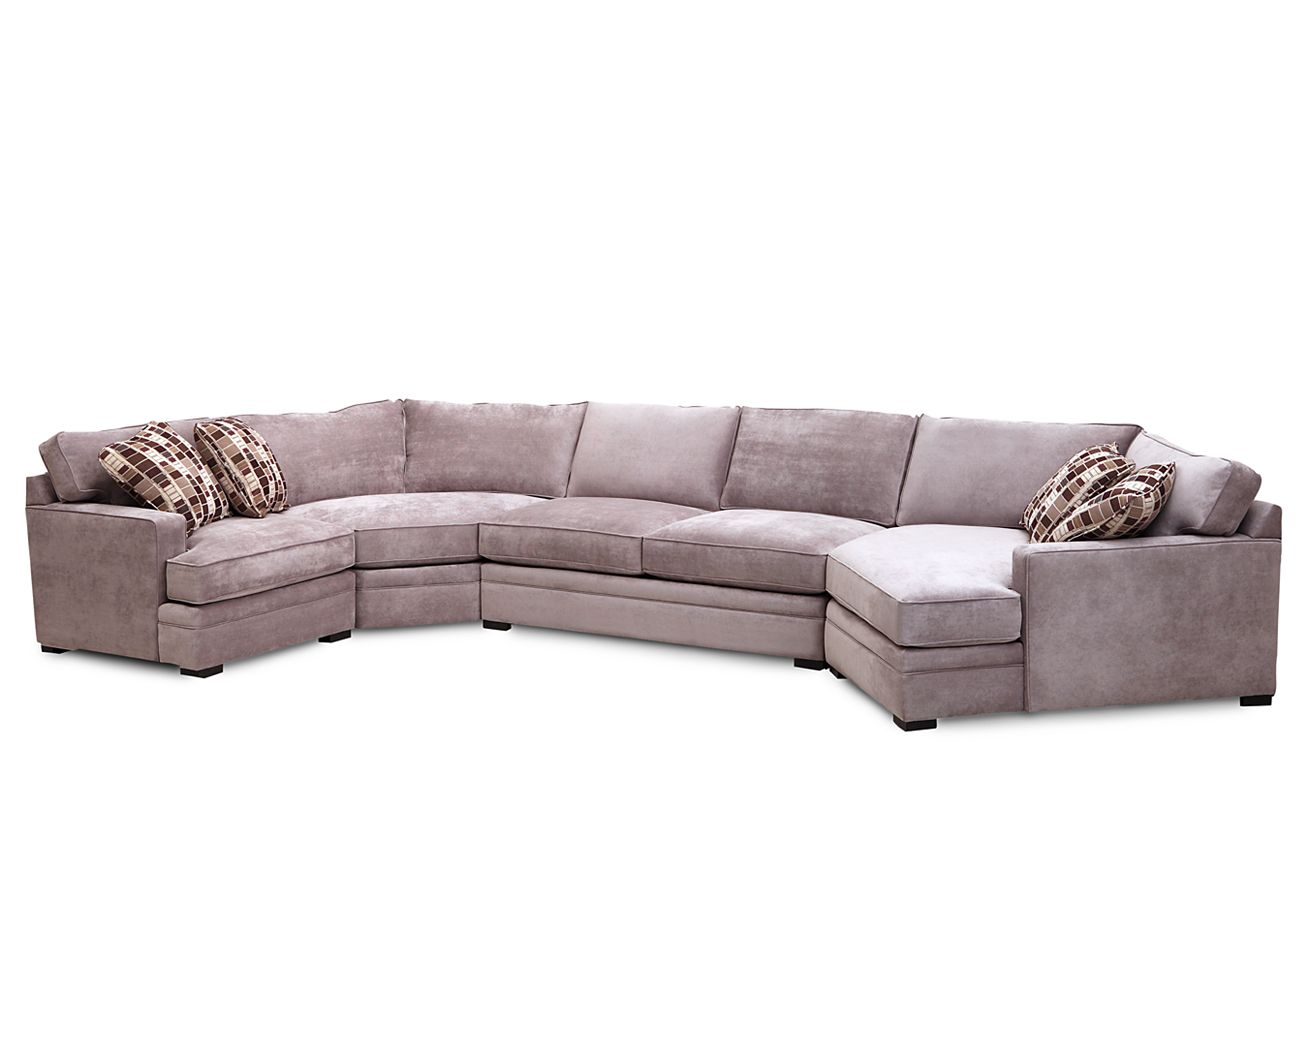 Glenwood 4 Pc Sectional ON SALE